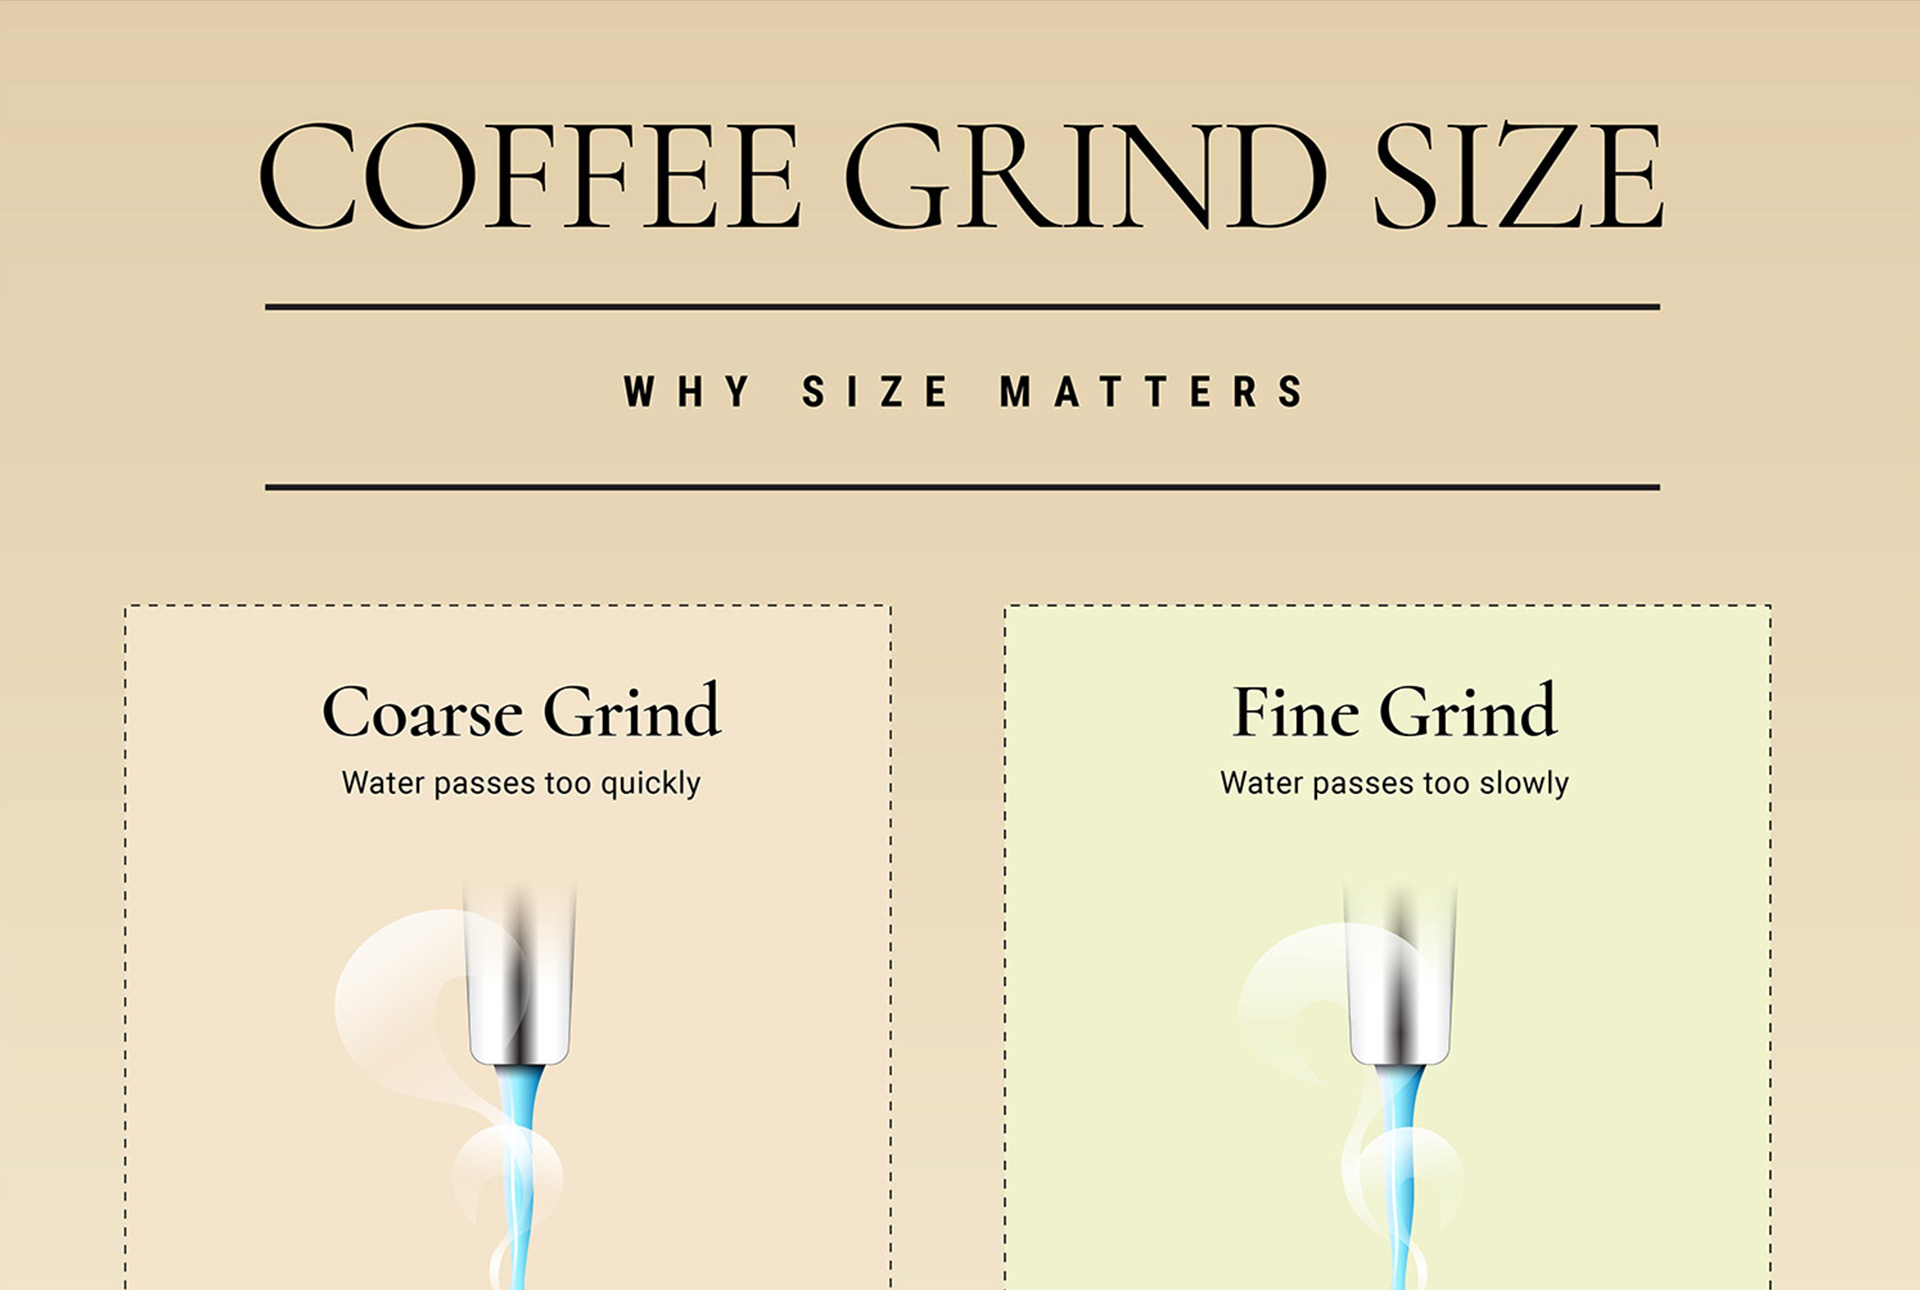 an infographic showing the difference between coarse and fine coffee grind size